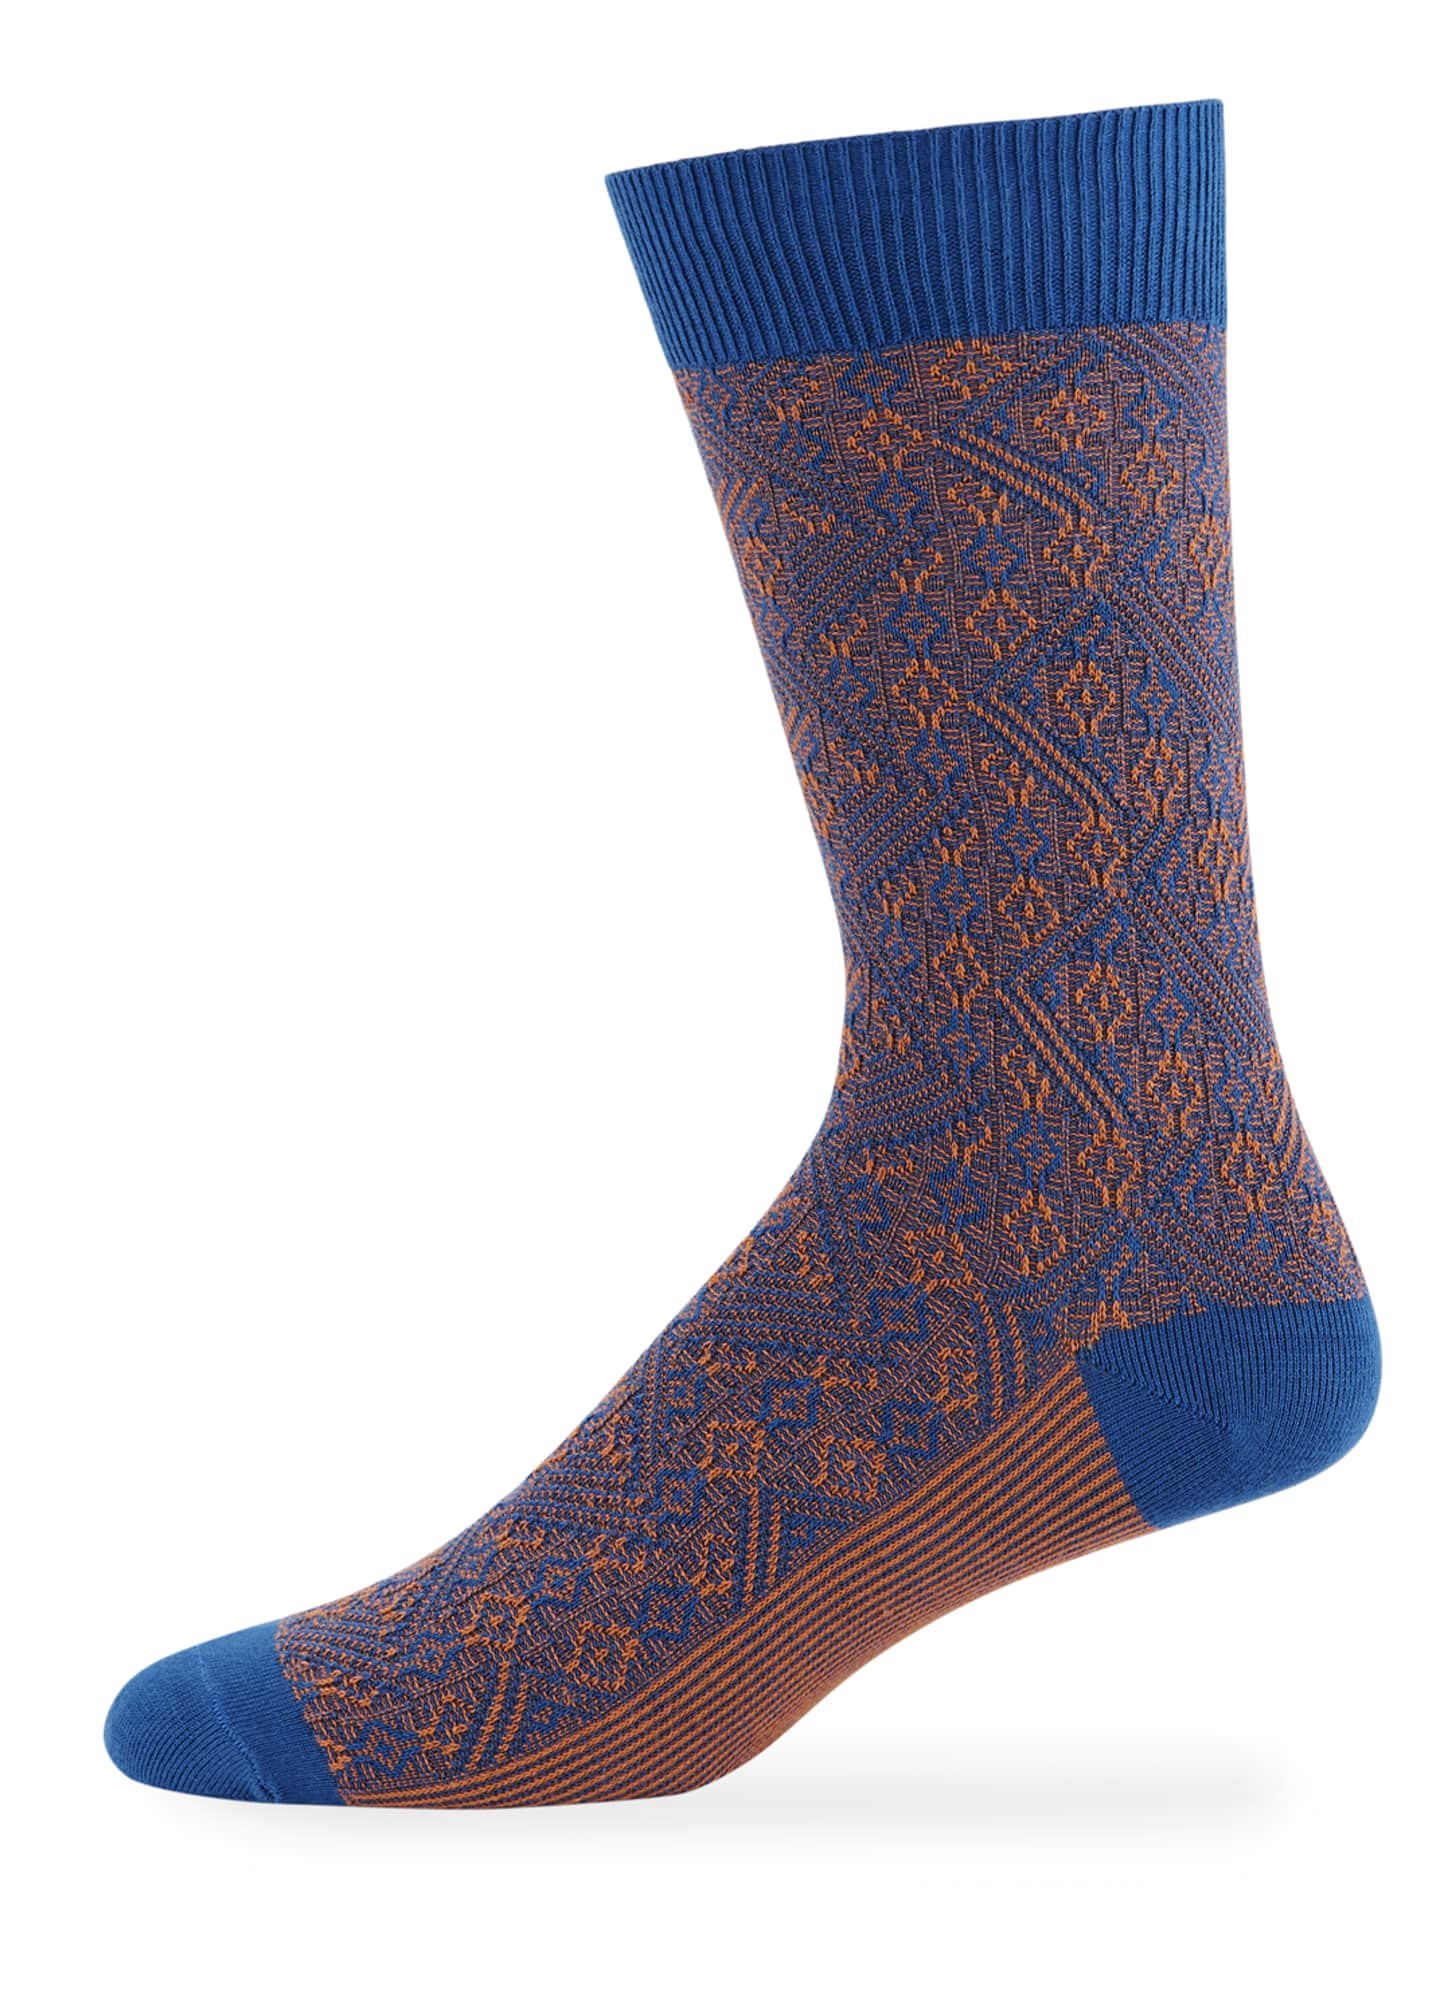 Ace & Everett Men's Baxter Two-Tone Socks